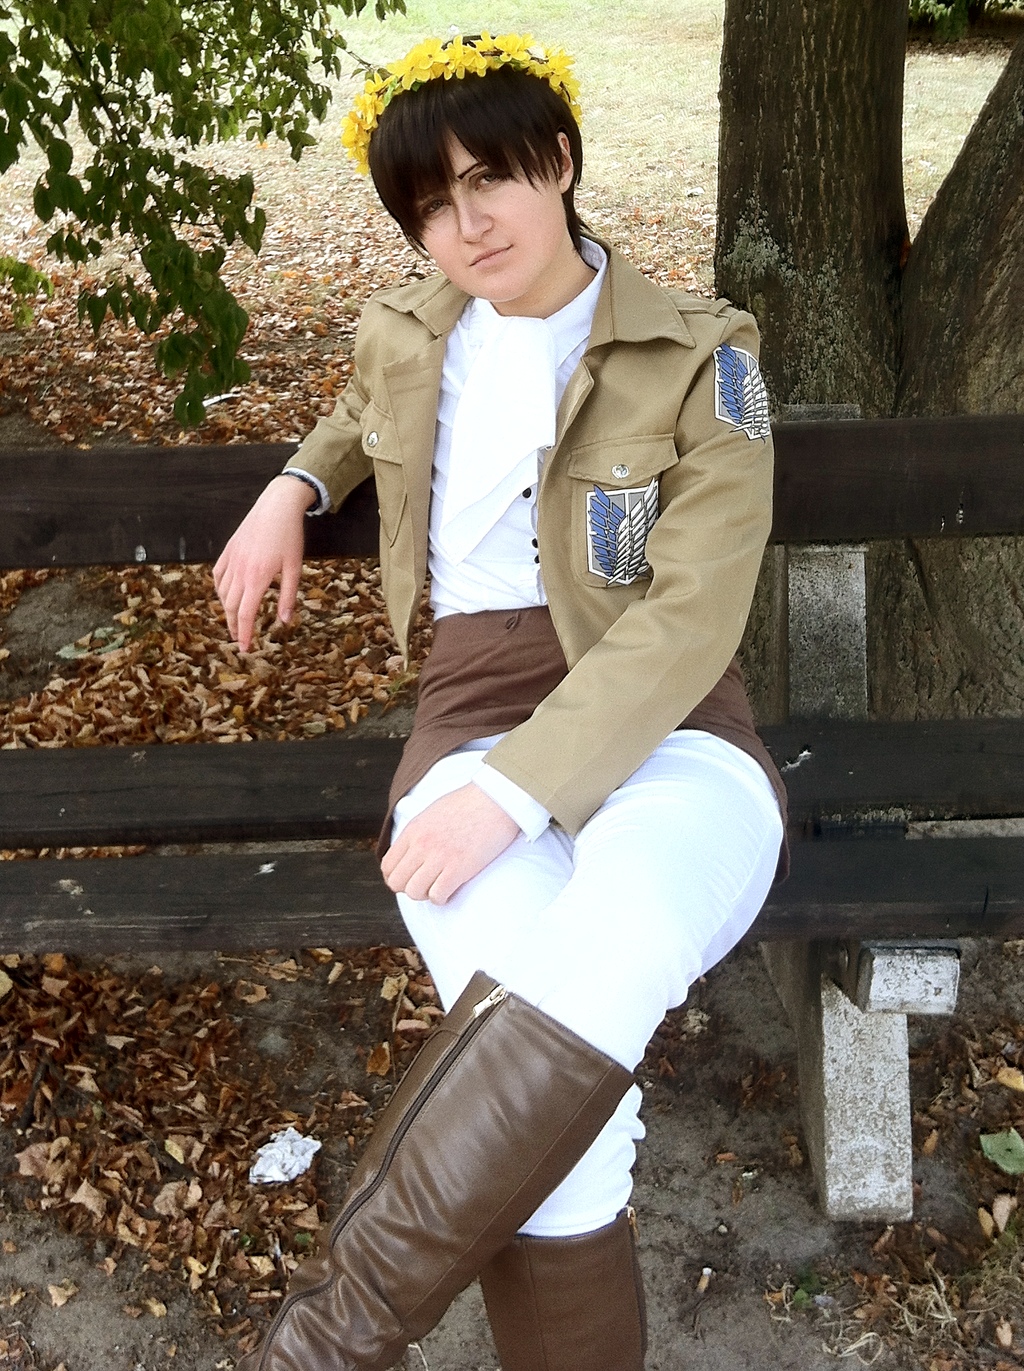 Gut bekannt SnK: Levi Ackerman cosplay 2 by themuffinshota on DeviantArt CT55